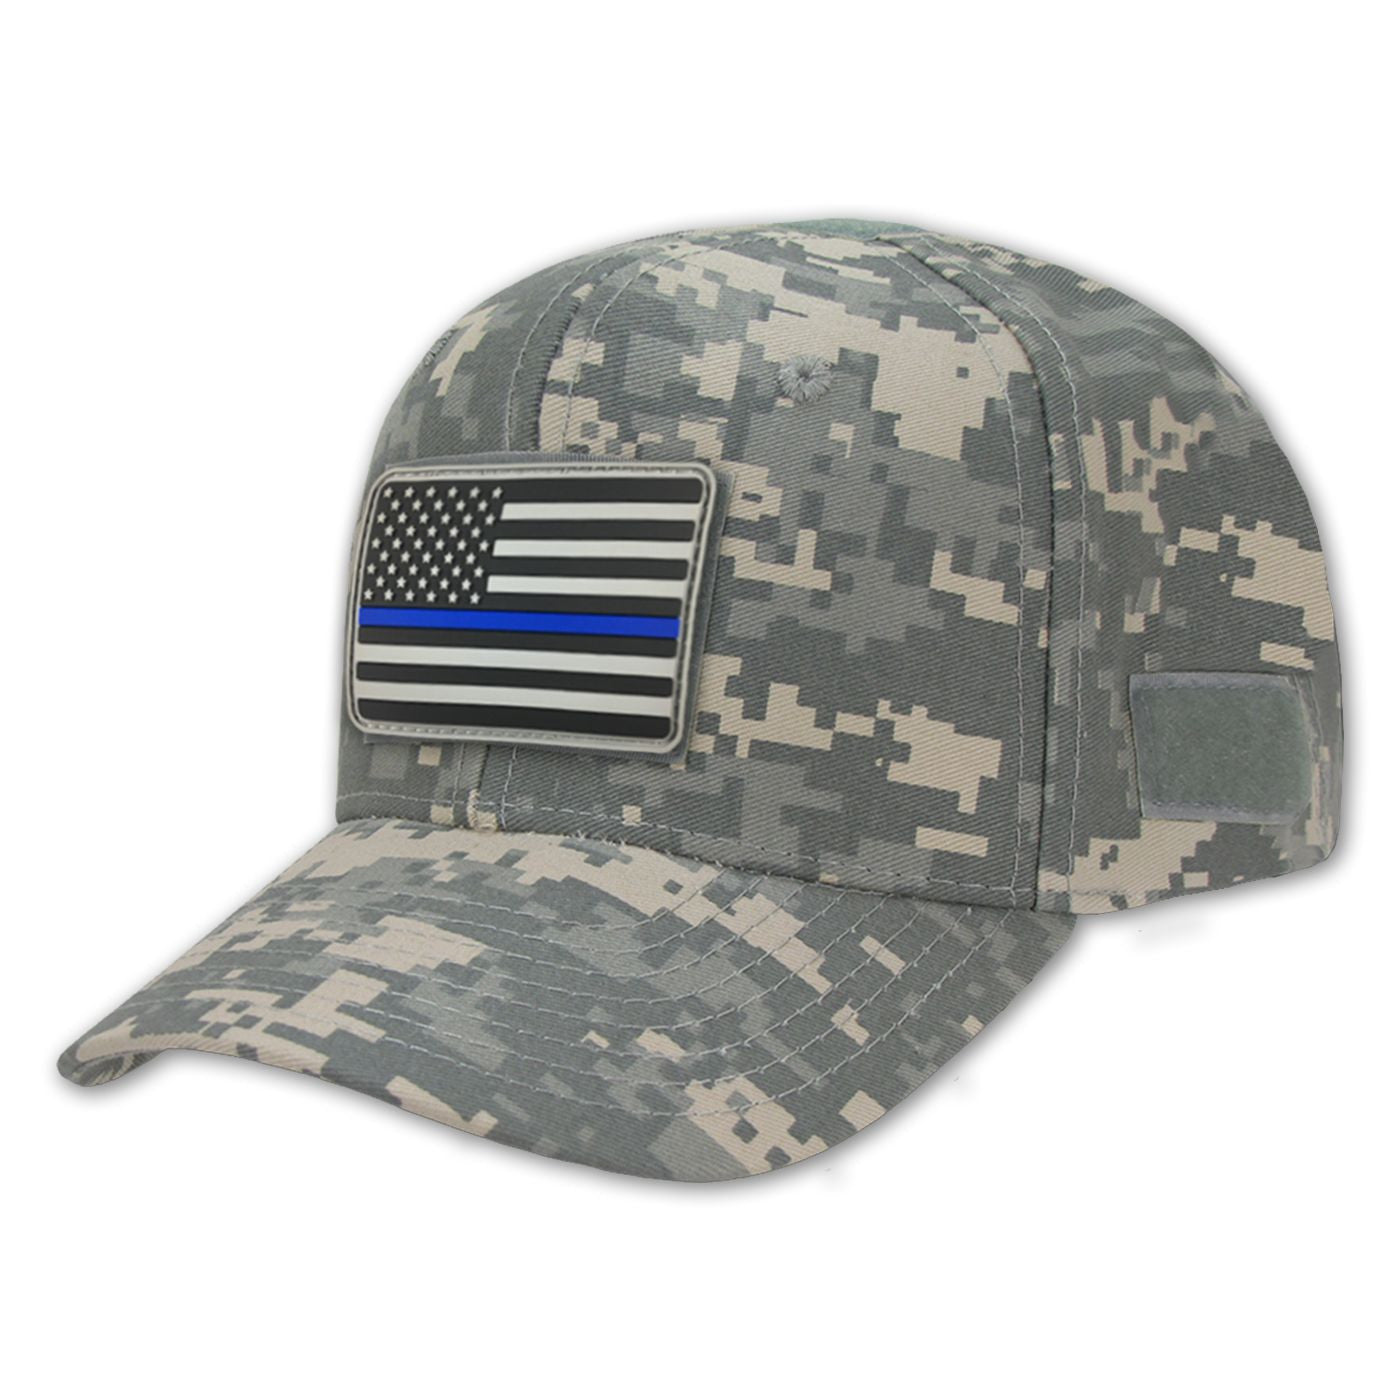 Camo Operator s Hat   Thin Blue Line Morale Patch - Thin Blue Line USA fdb23a5520f